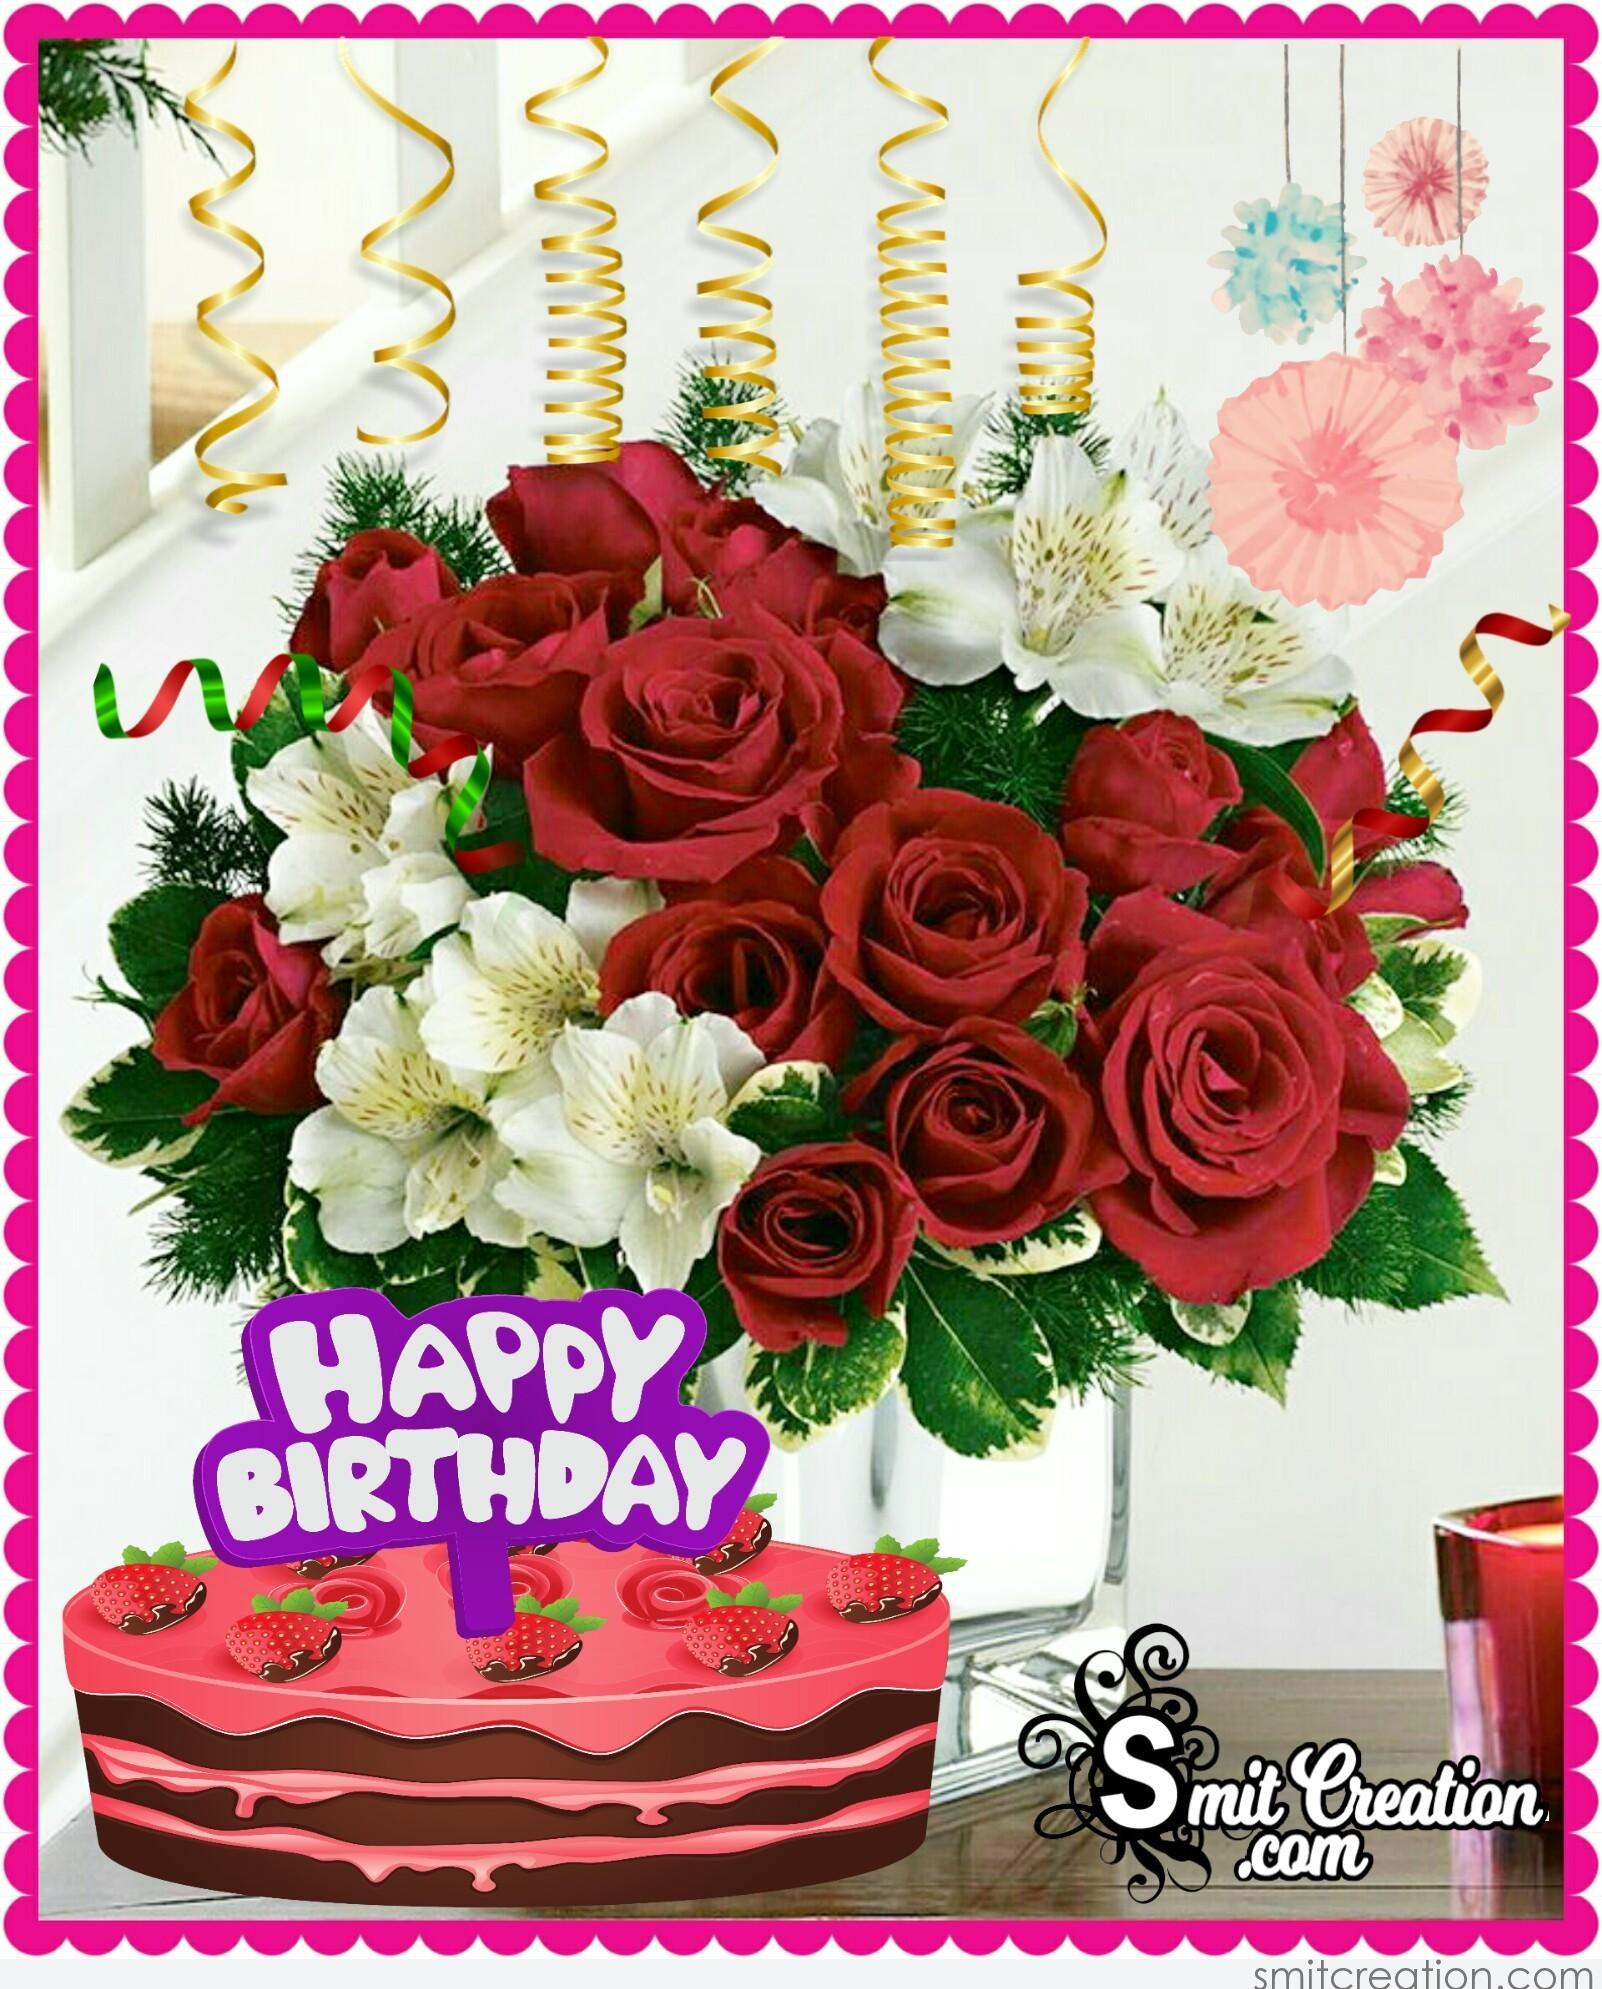 Happy Birthday Flower Bouquet With Cake Smitcreation